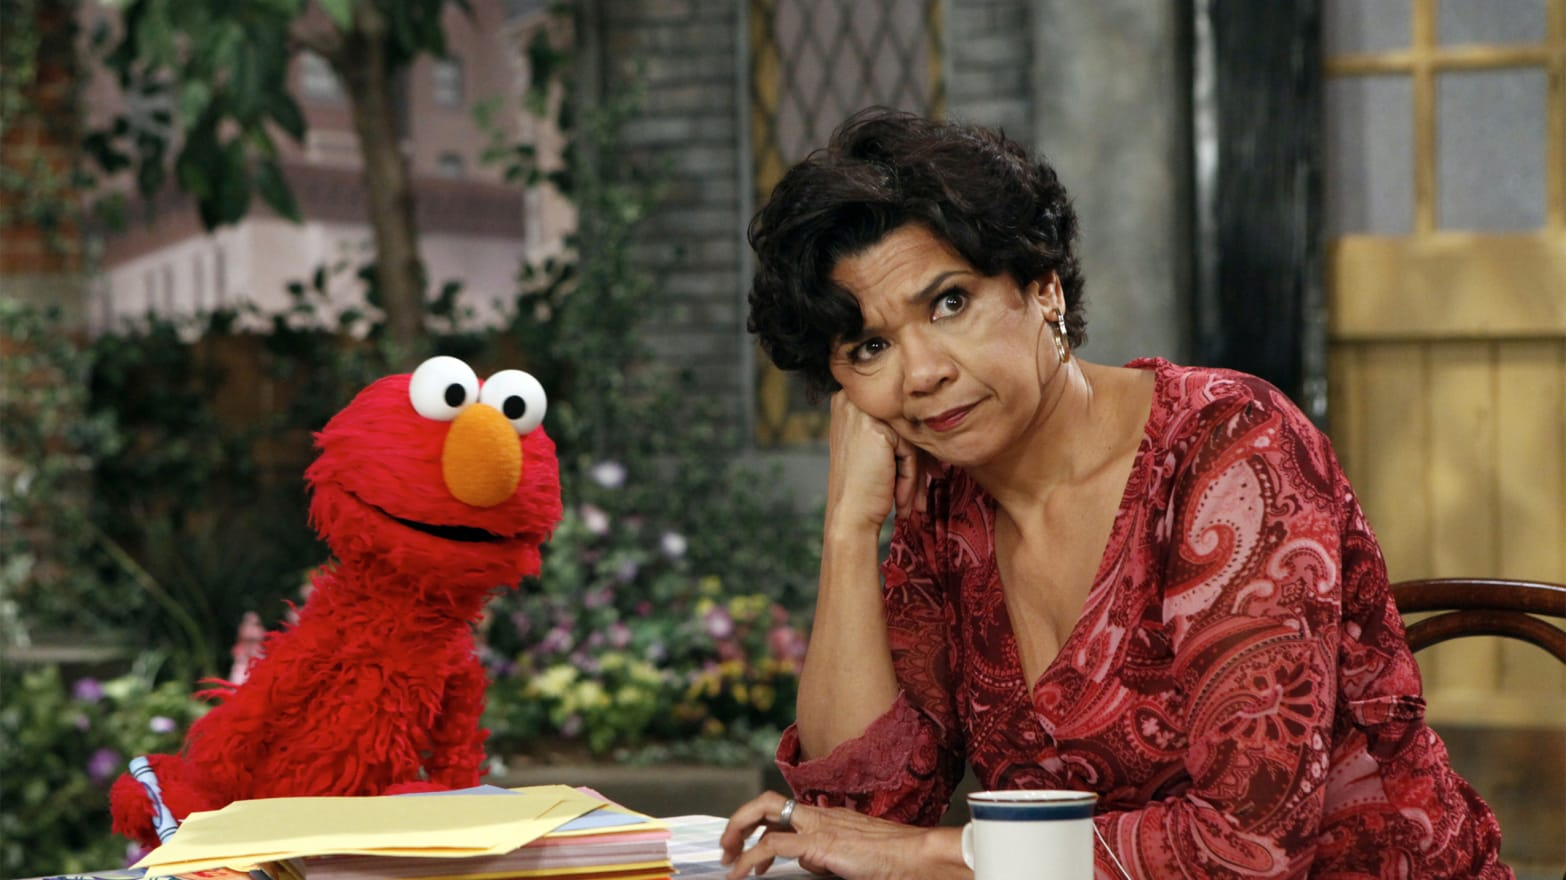 Why Maria Left 'Sesame Street'